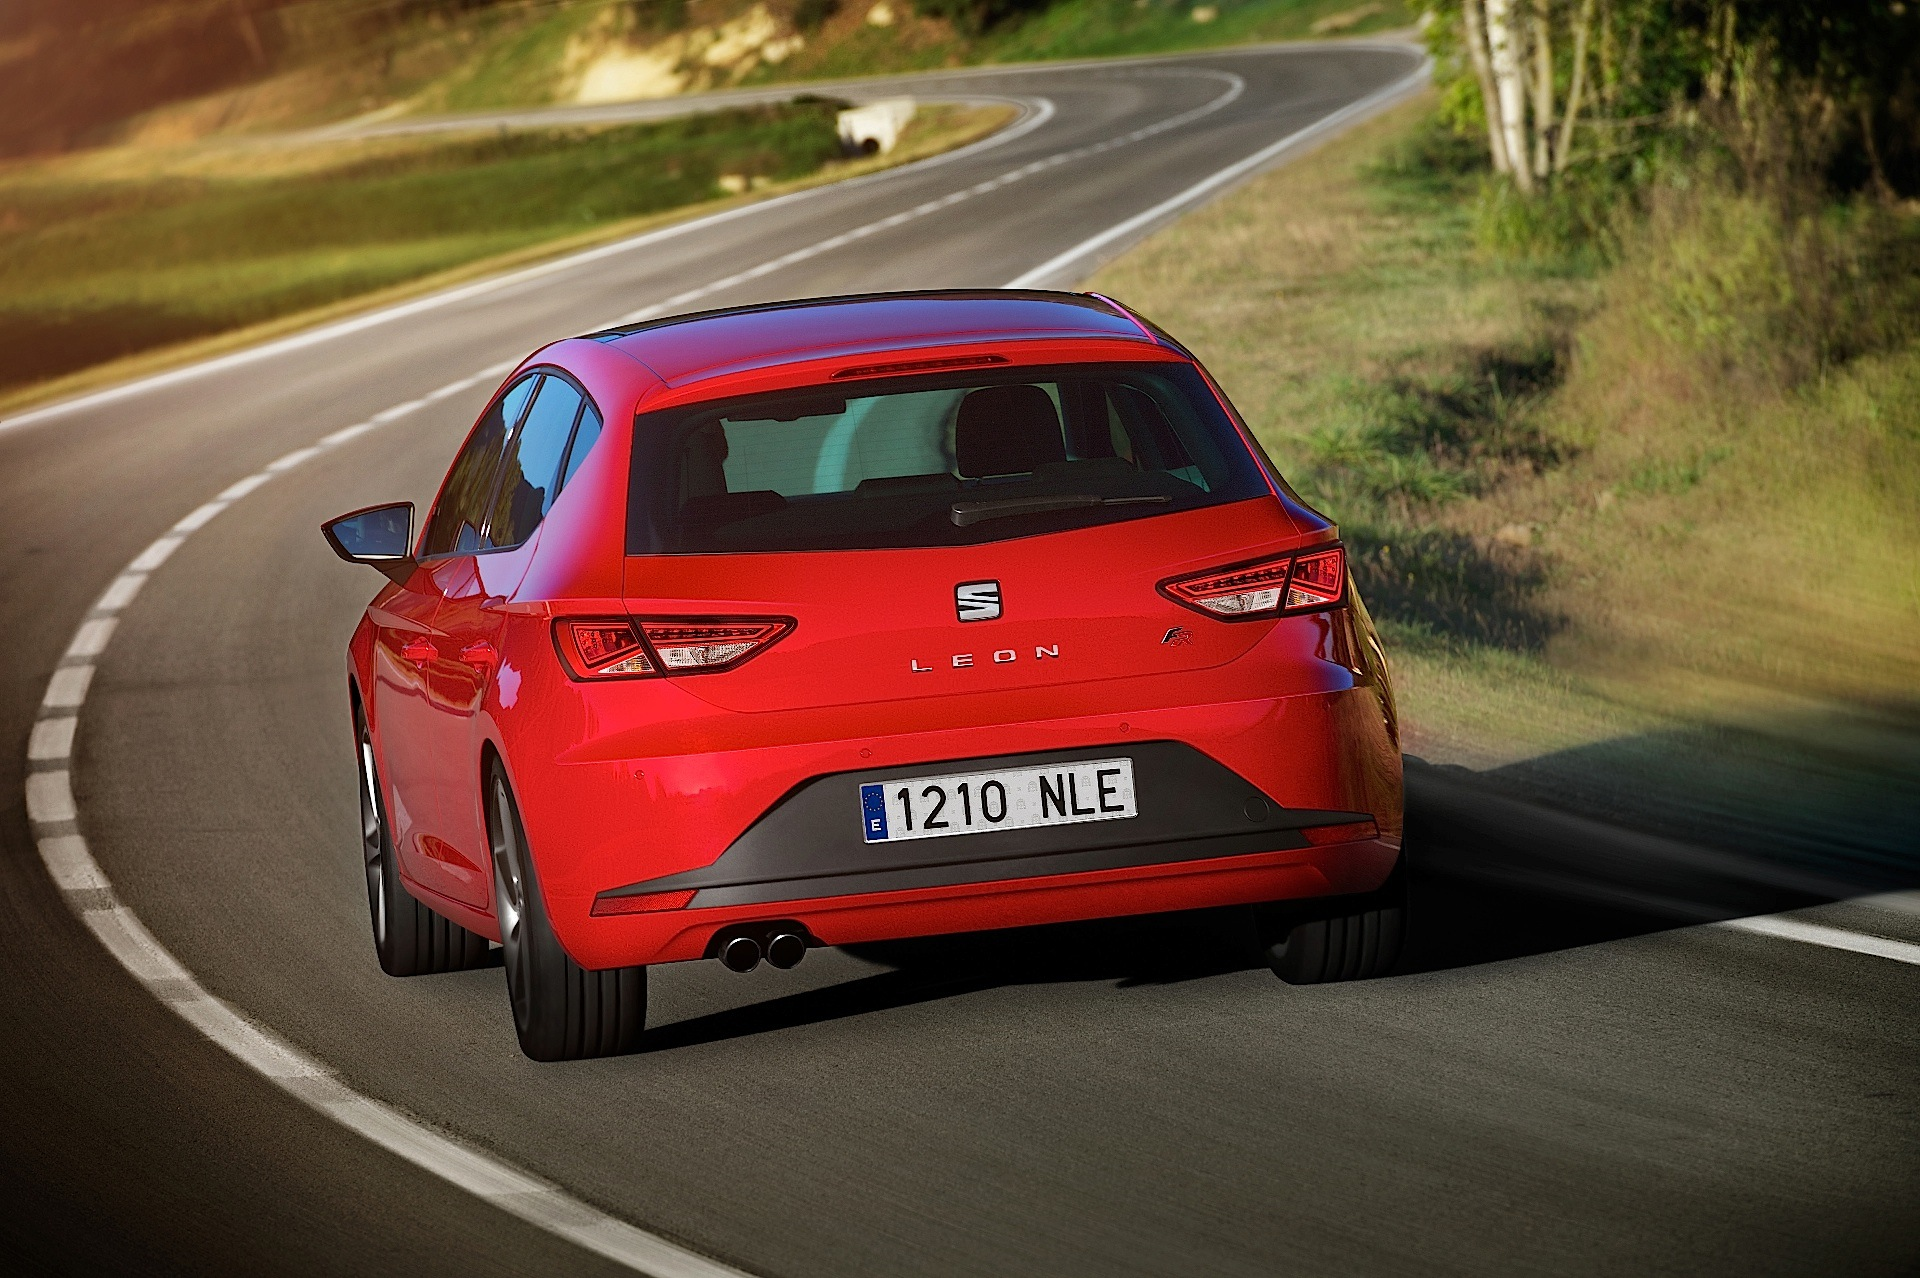 seat leon 5 doors specs 2012 2013 2014 2015 2016 2017 2018 autoevolution. Black Bedroom Furniture Sets. Home Design Ideas